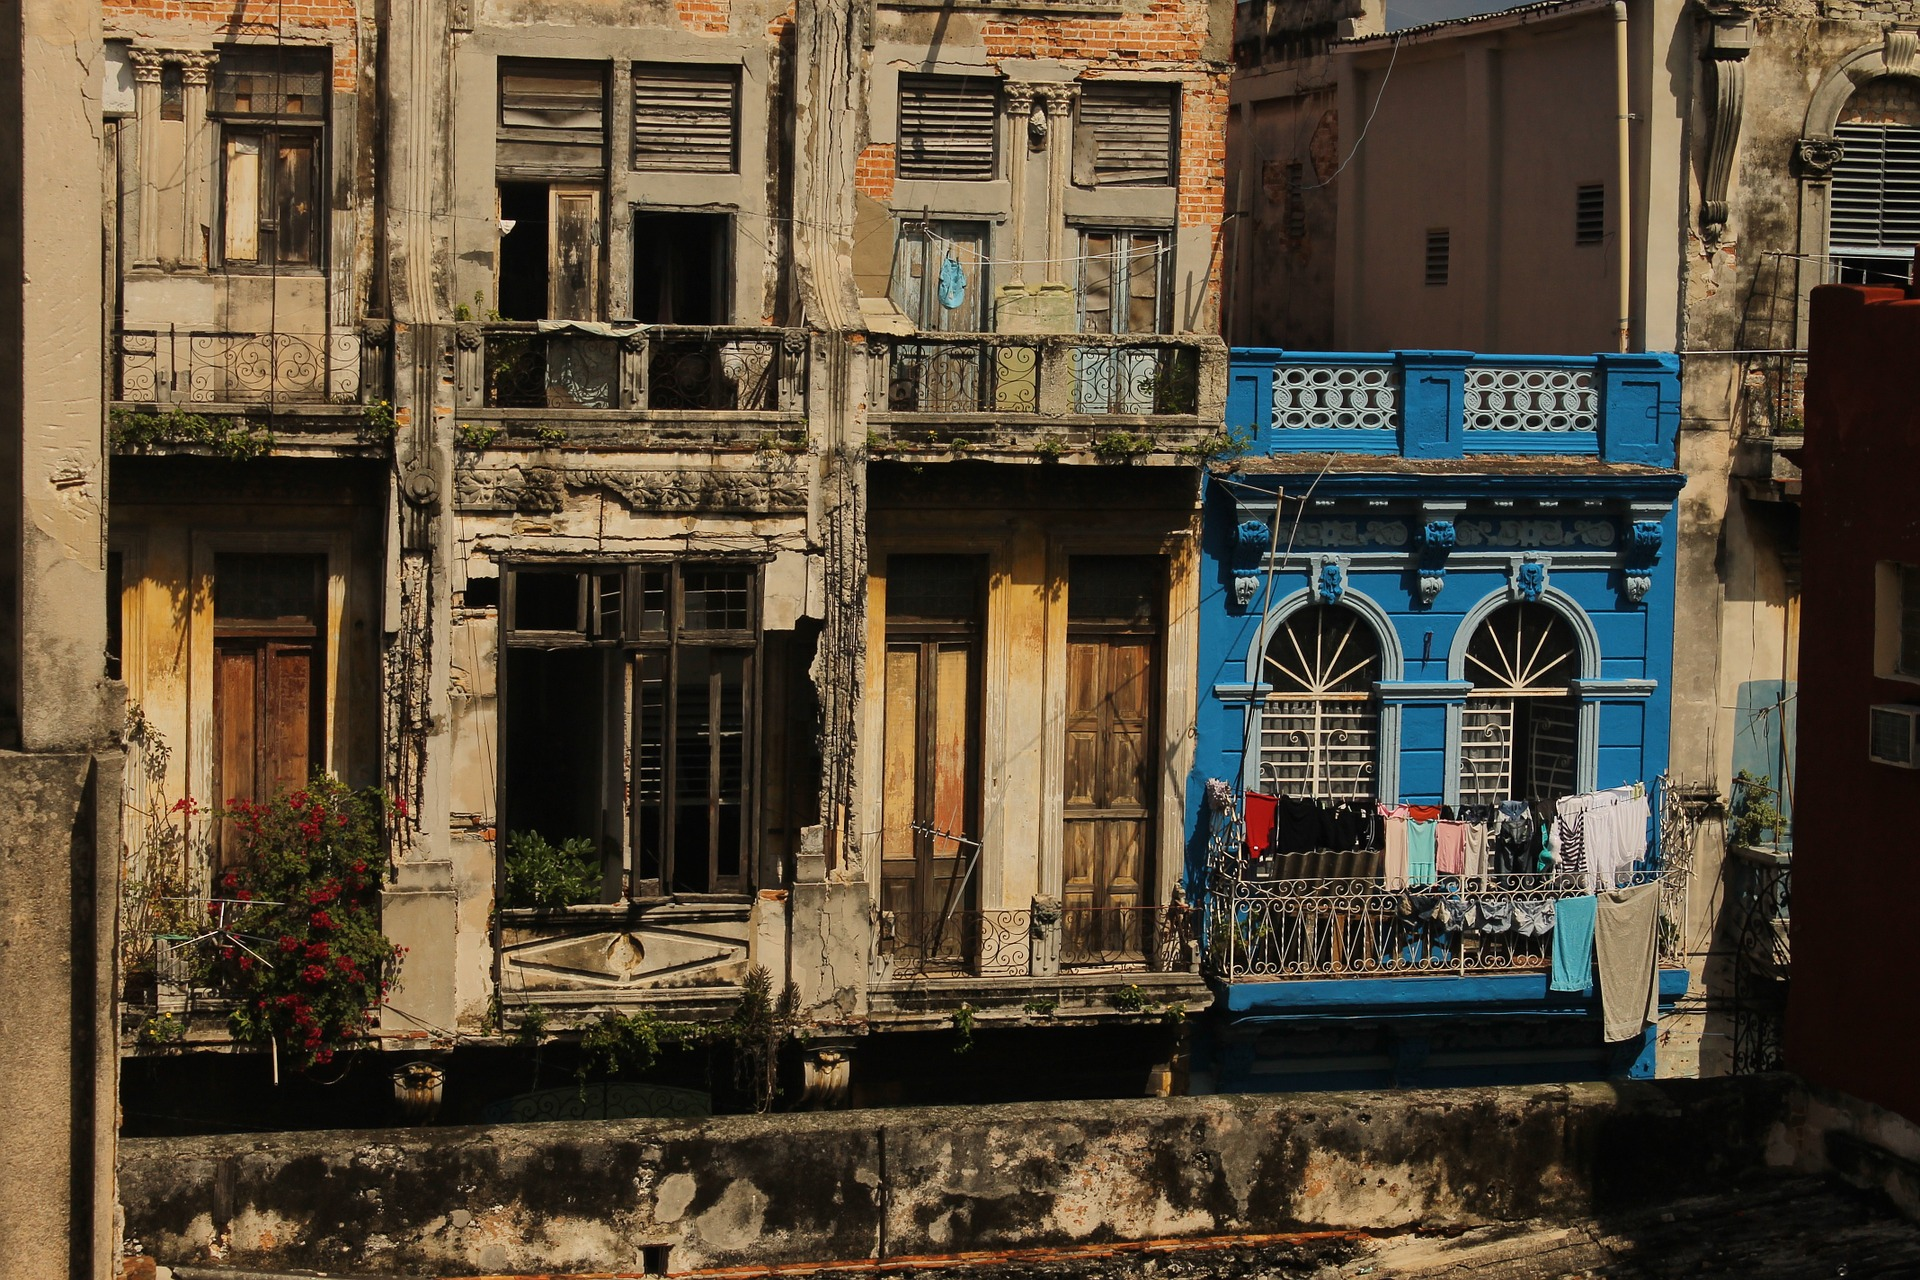 PHOTO CREDIT:  Luis Carlos Adrianzen  CC0 Creative Commons; The buildings of old Havana remain precarious